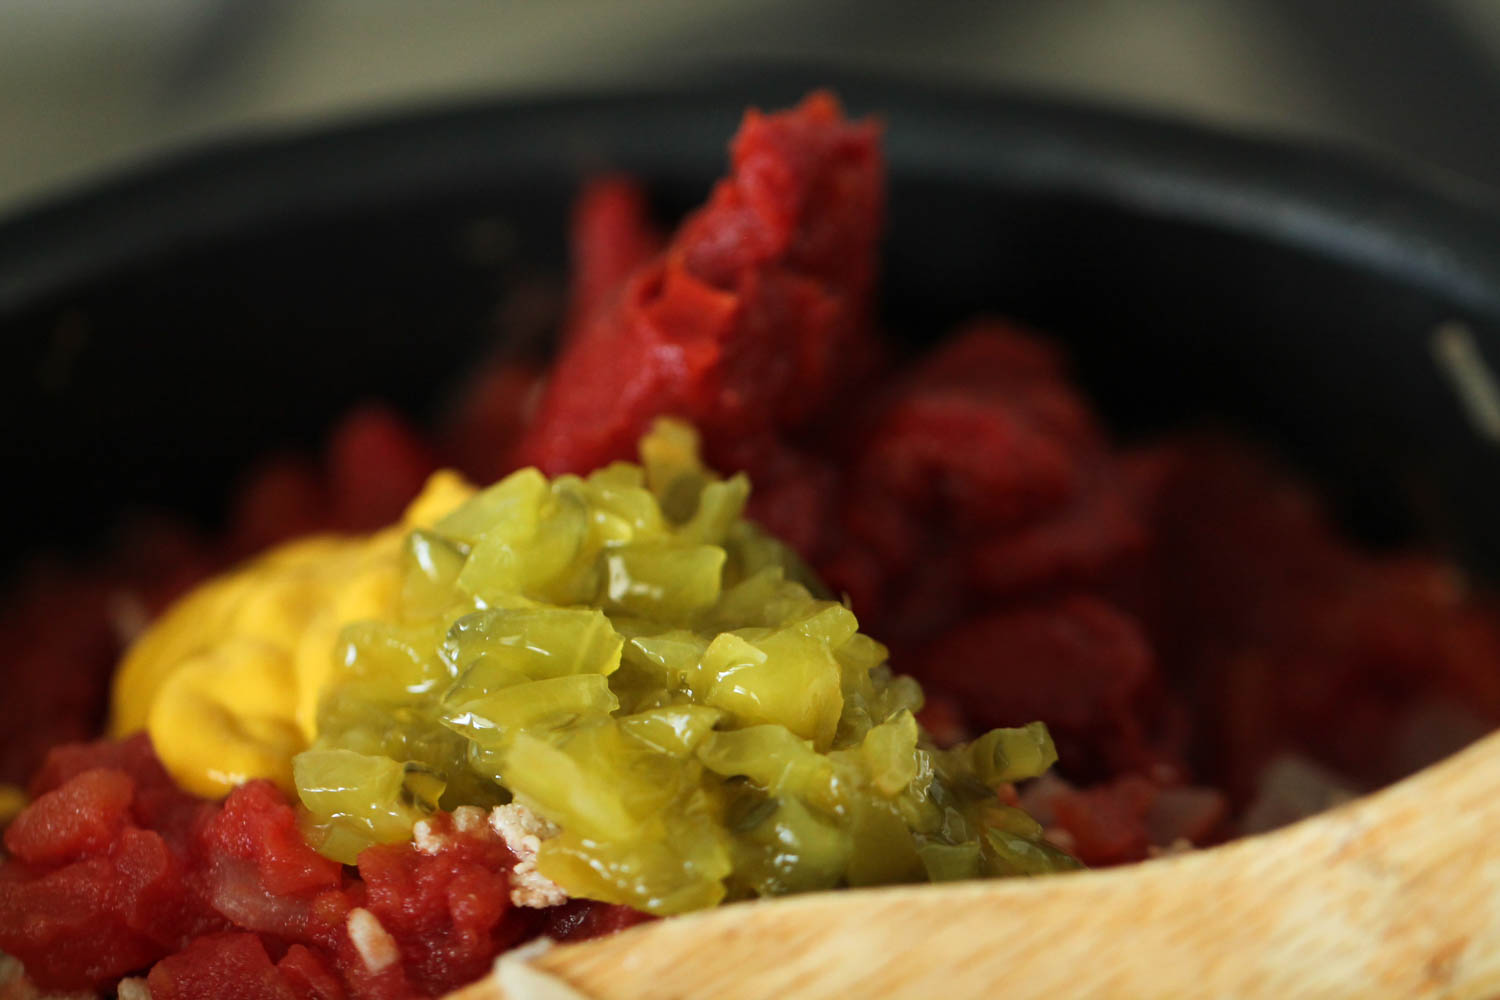 Tomato paste, mustard and pickle relish added to browned turkey